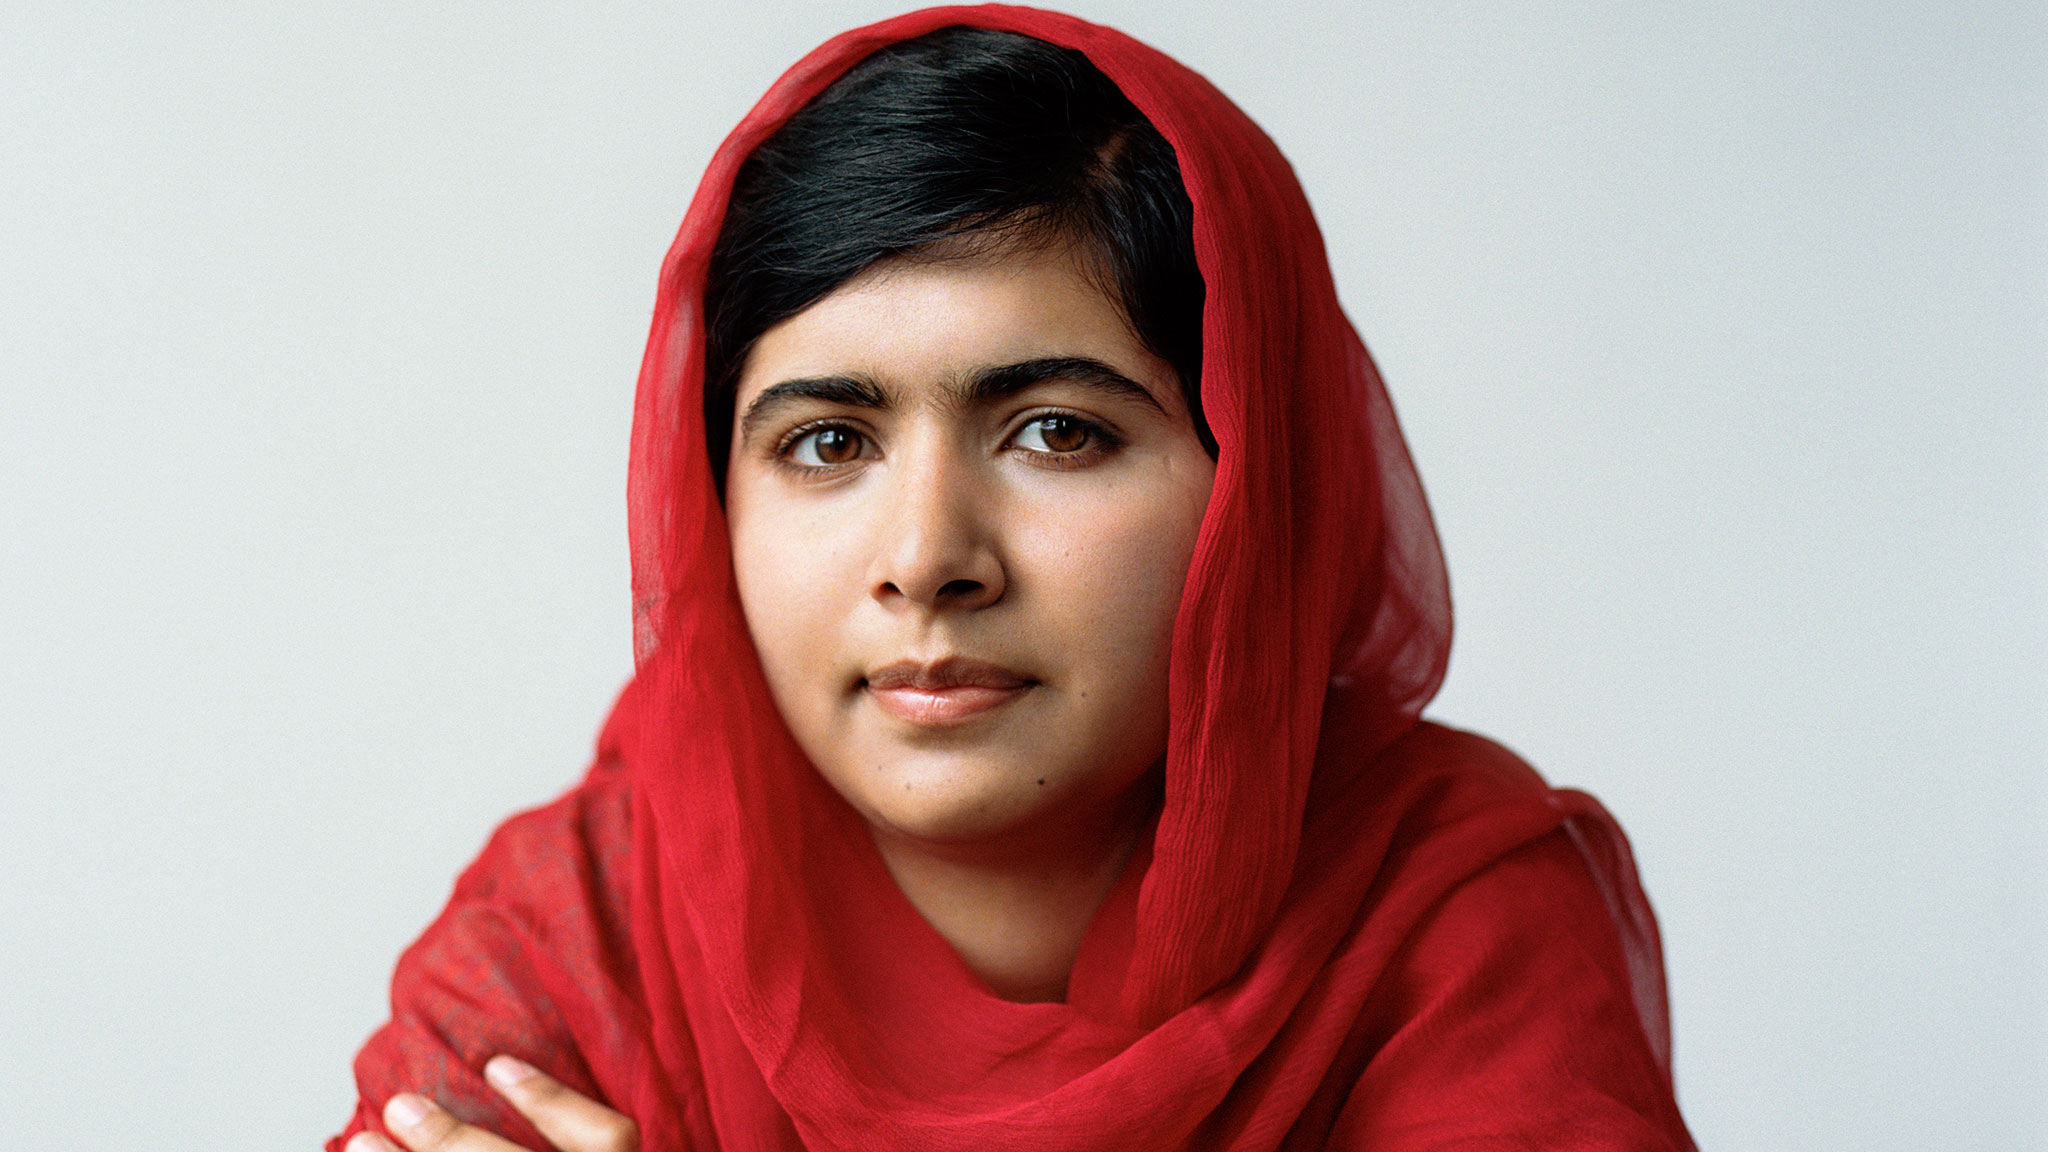 World has 'lost humanity' on Syria: Malala